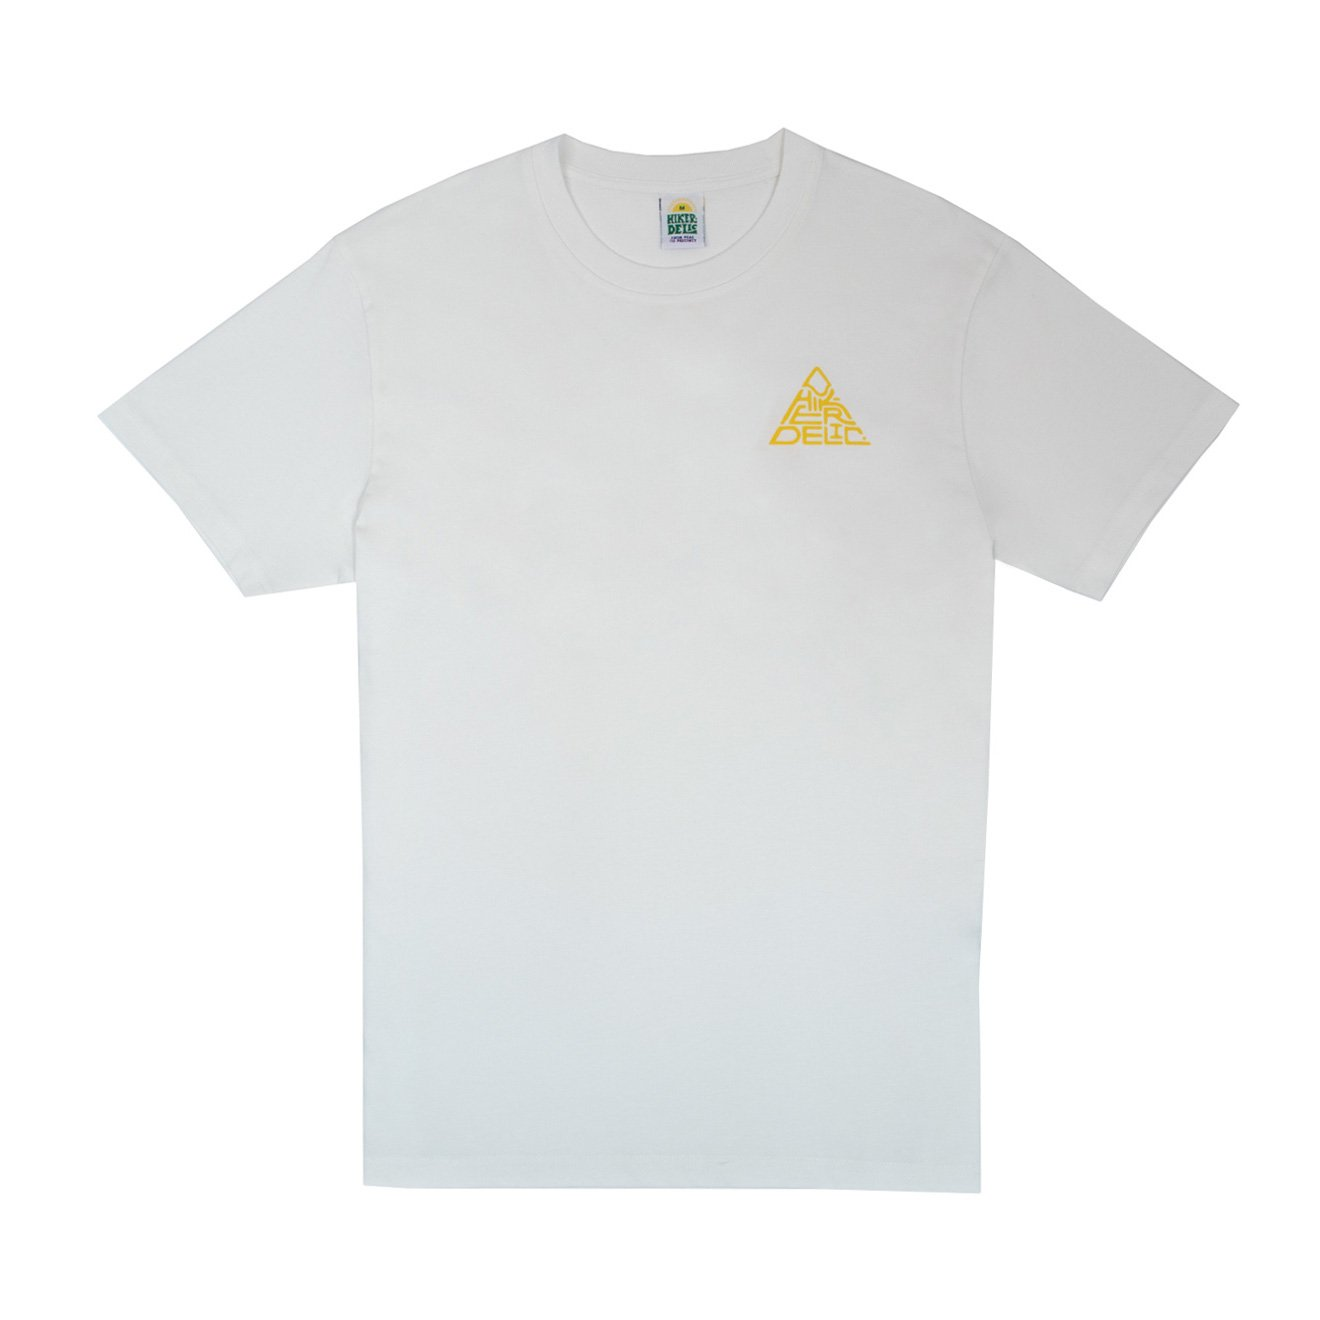 Hikerdelic-Mountain-Logo-Short-Sleeve-T-Shirt—Off-White—001_1320x